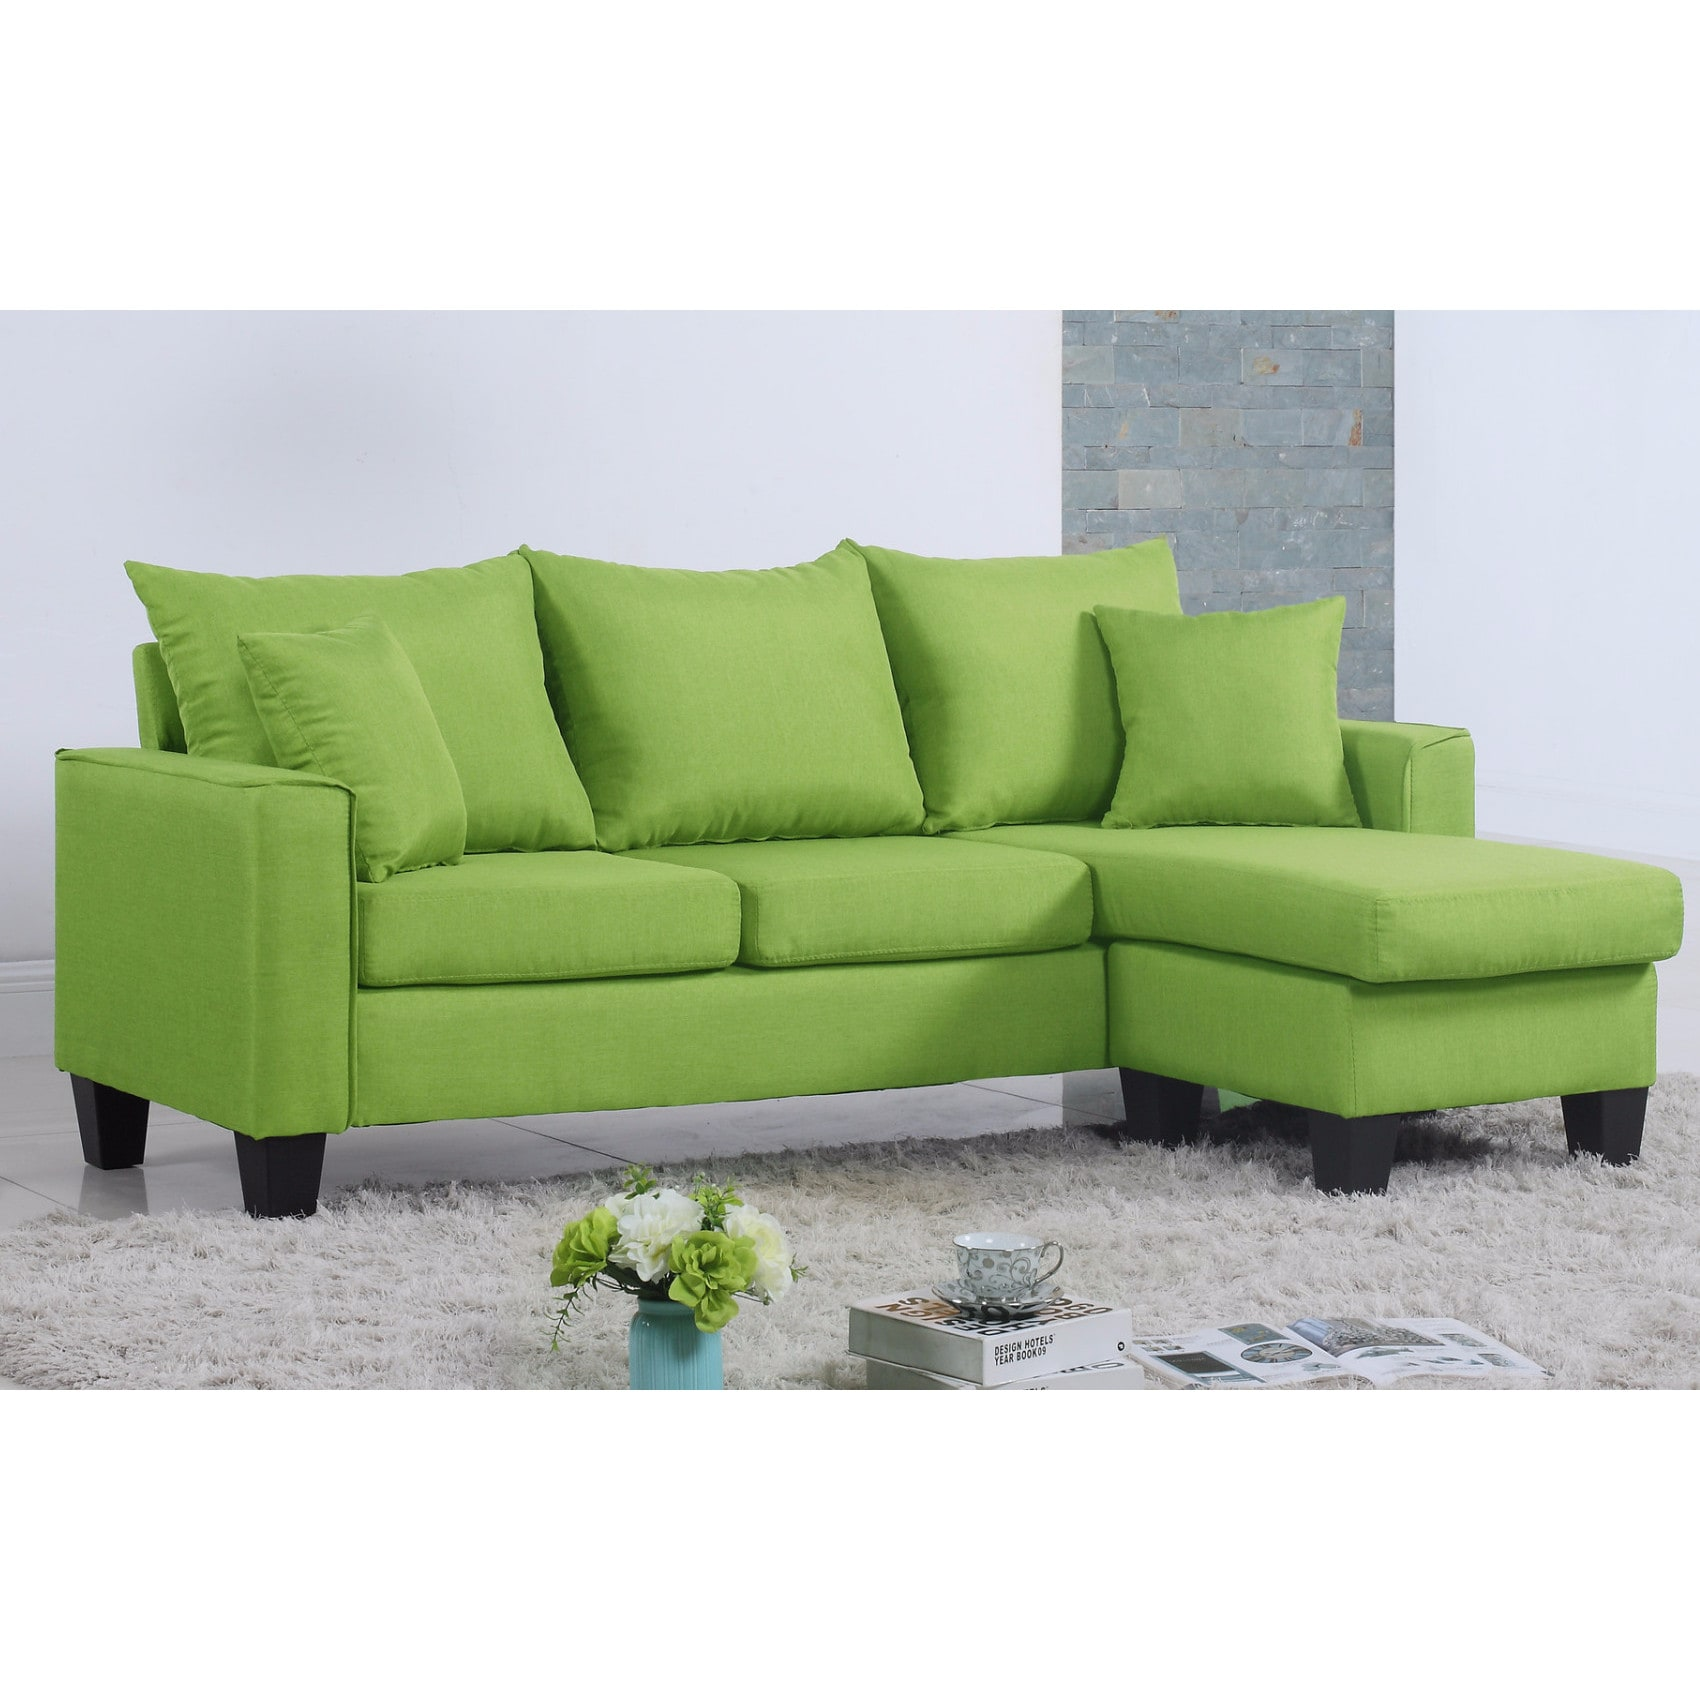 home gel de anti cover item silica blue sectional covers waterproof sofa couch green fundas slip navy from in